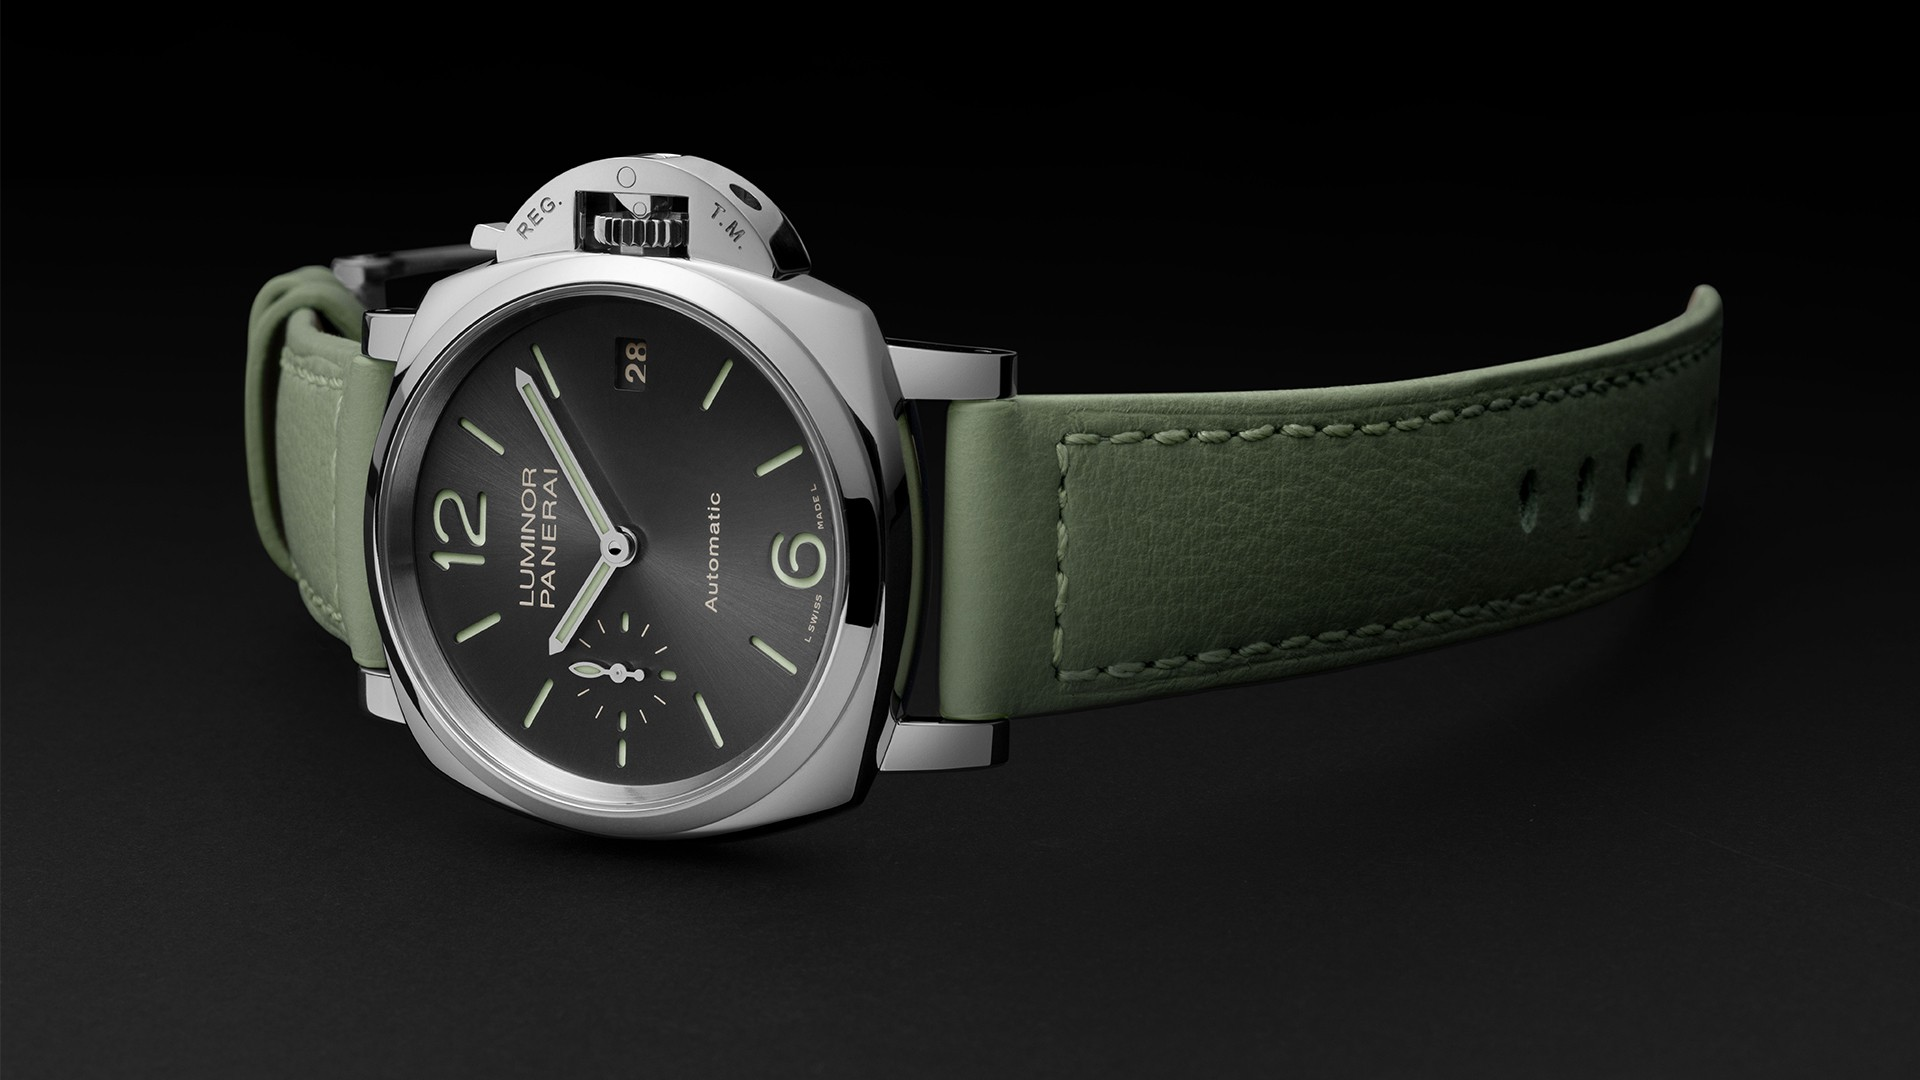 Panerai Luminor Due 38mm